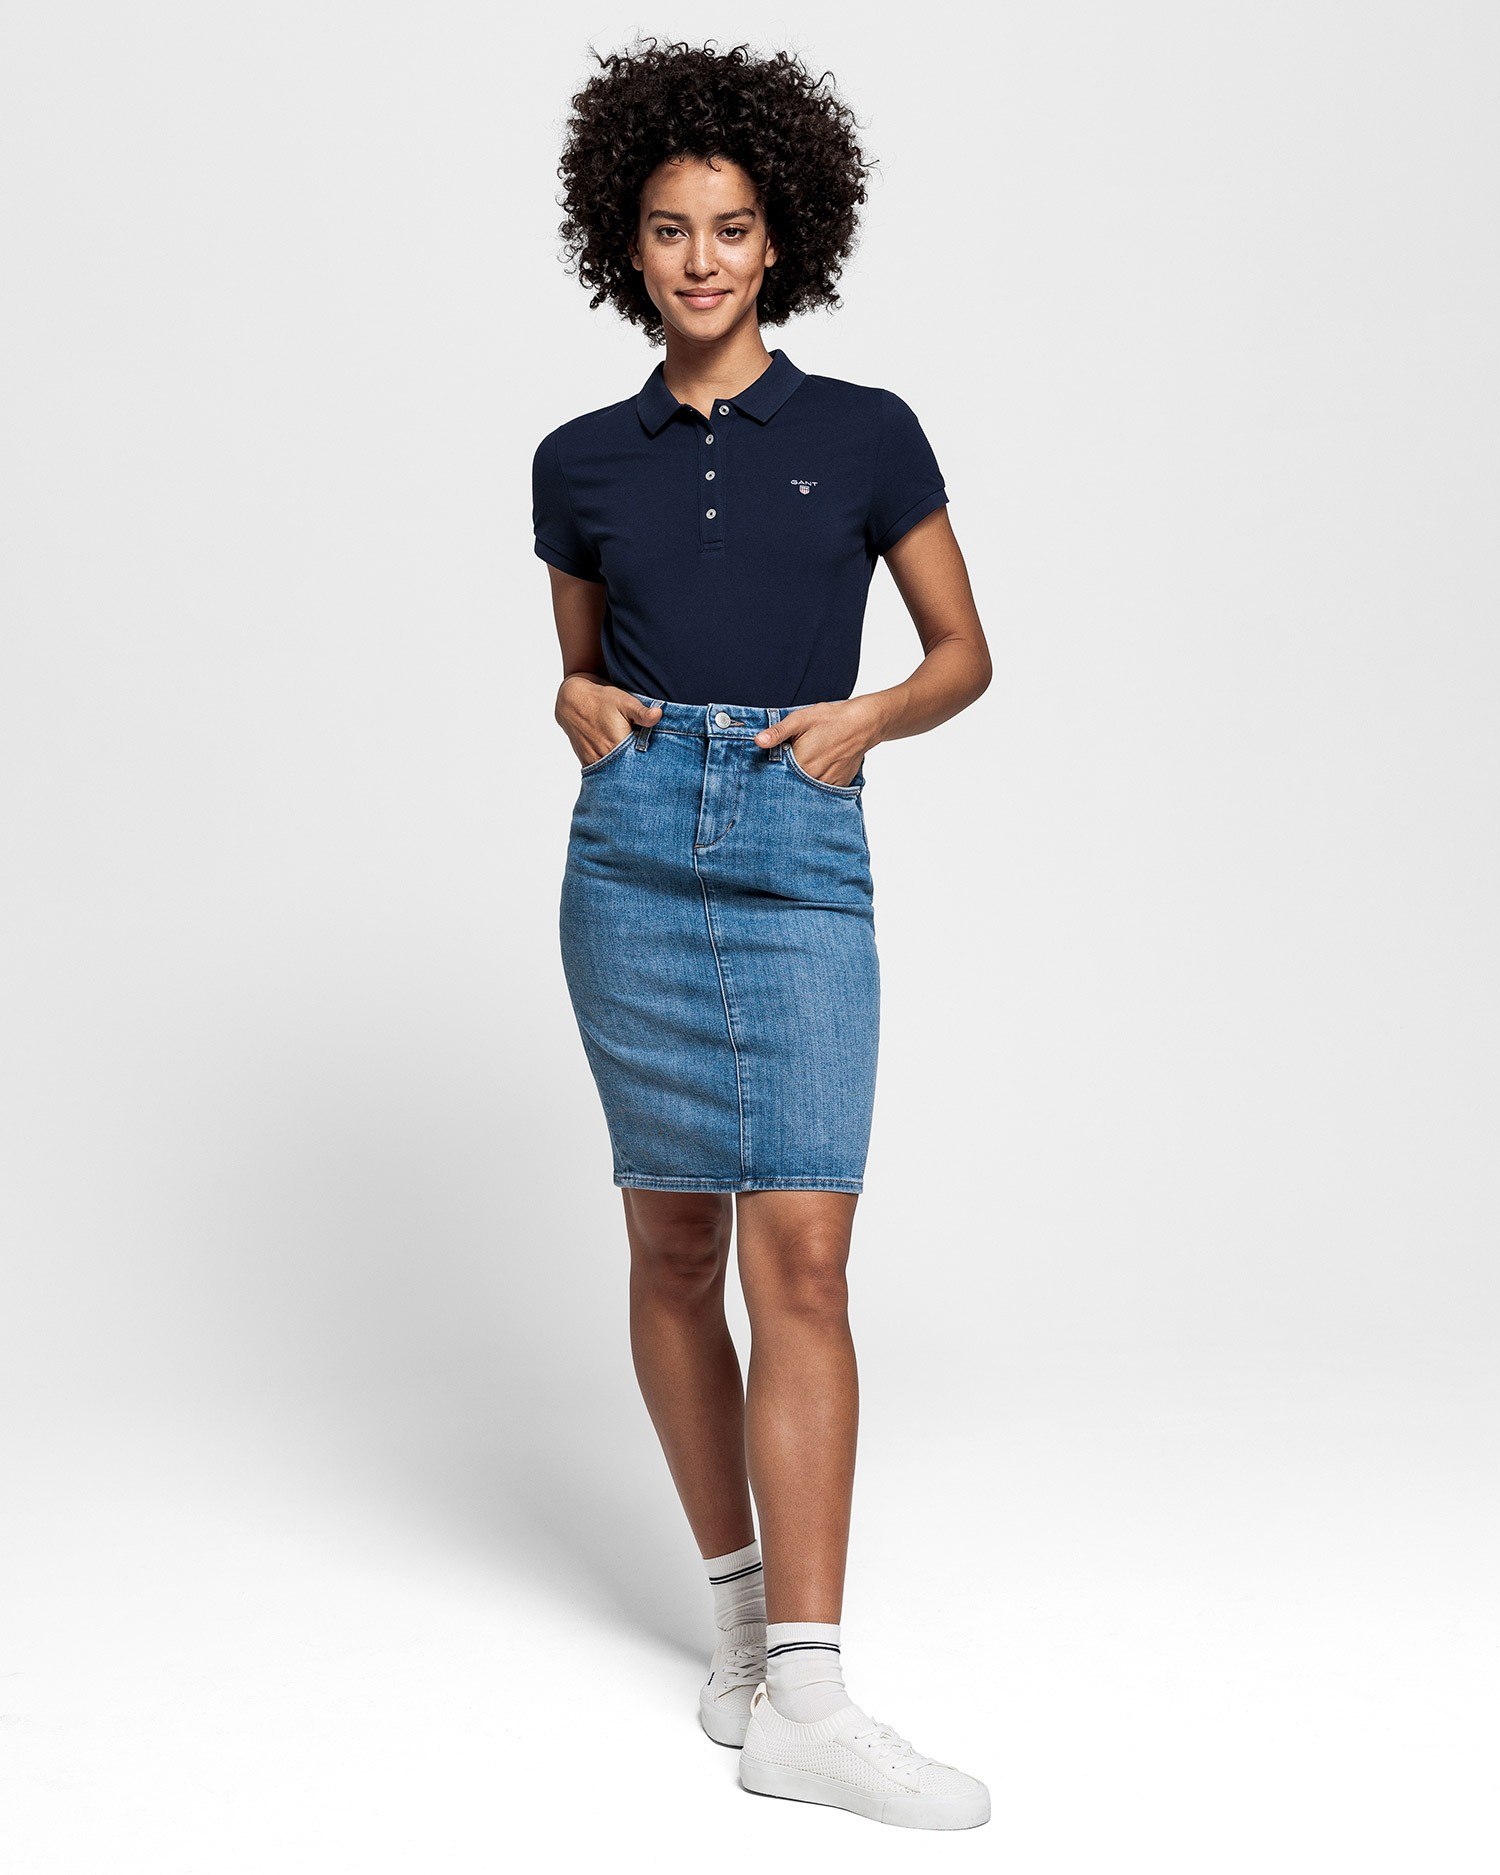 GANT Women's Original Pique Polo - 402201